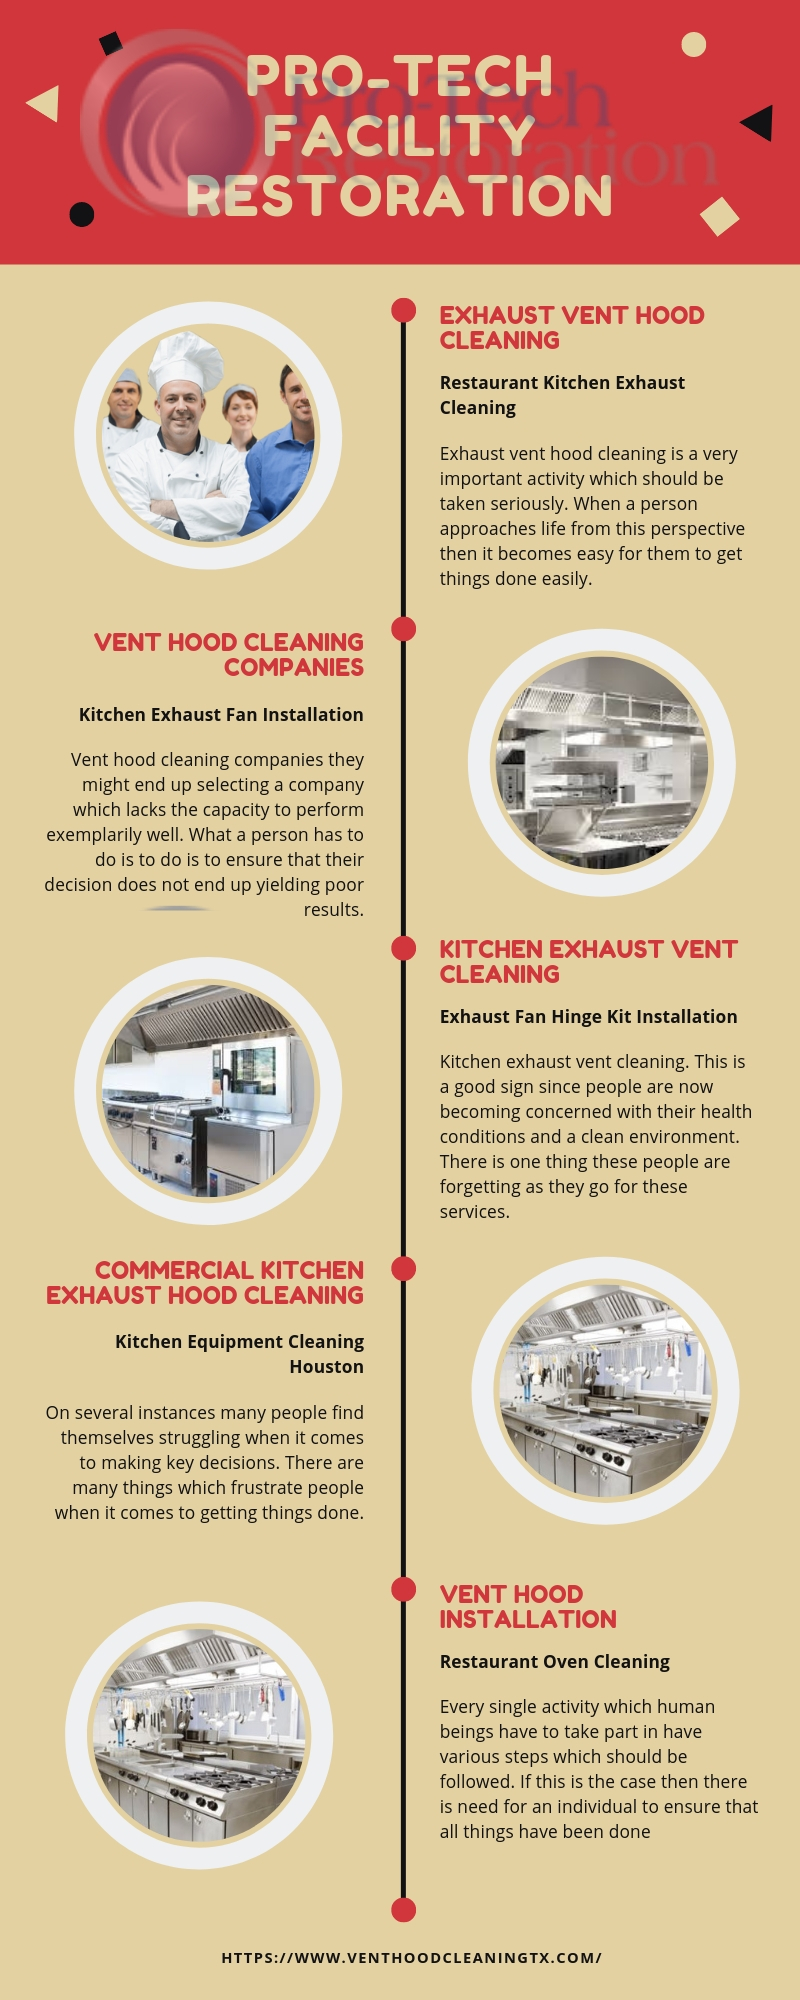 Restaurant Kitchen Exhaust Cleaning.jpg  by Venthoodcleaningtx